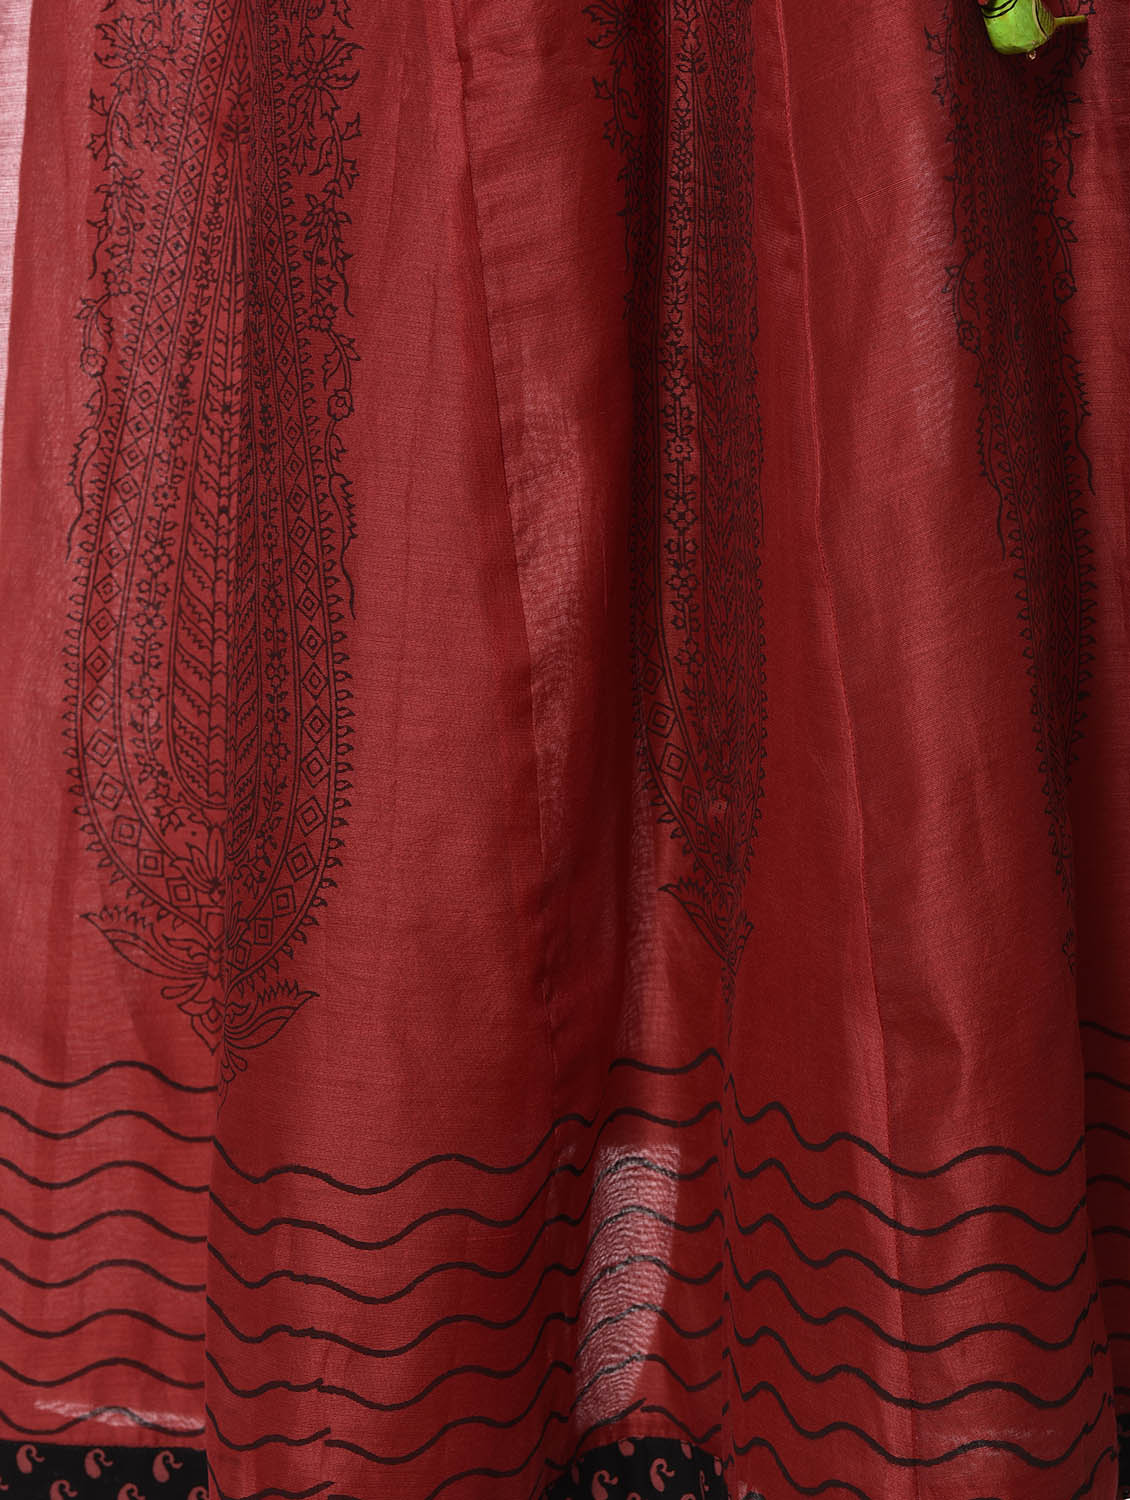 0a53c409c621 ... Red and black chanderi silk skirt and top set - 12999805 - Zoom Image -  4